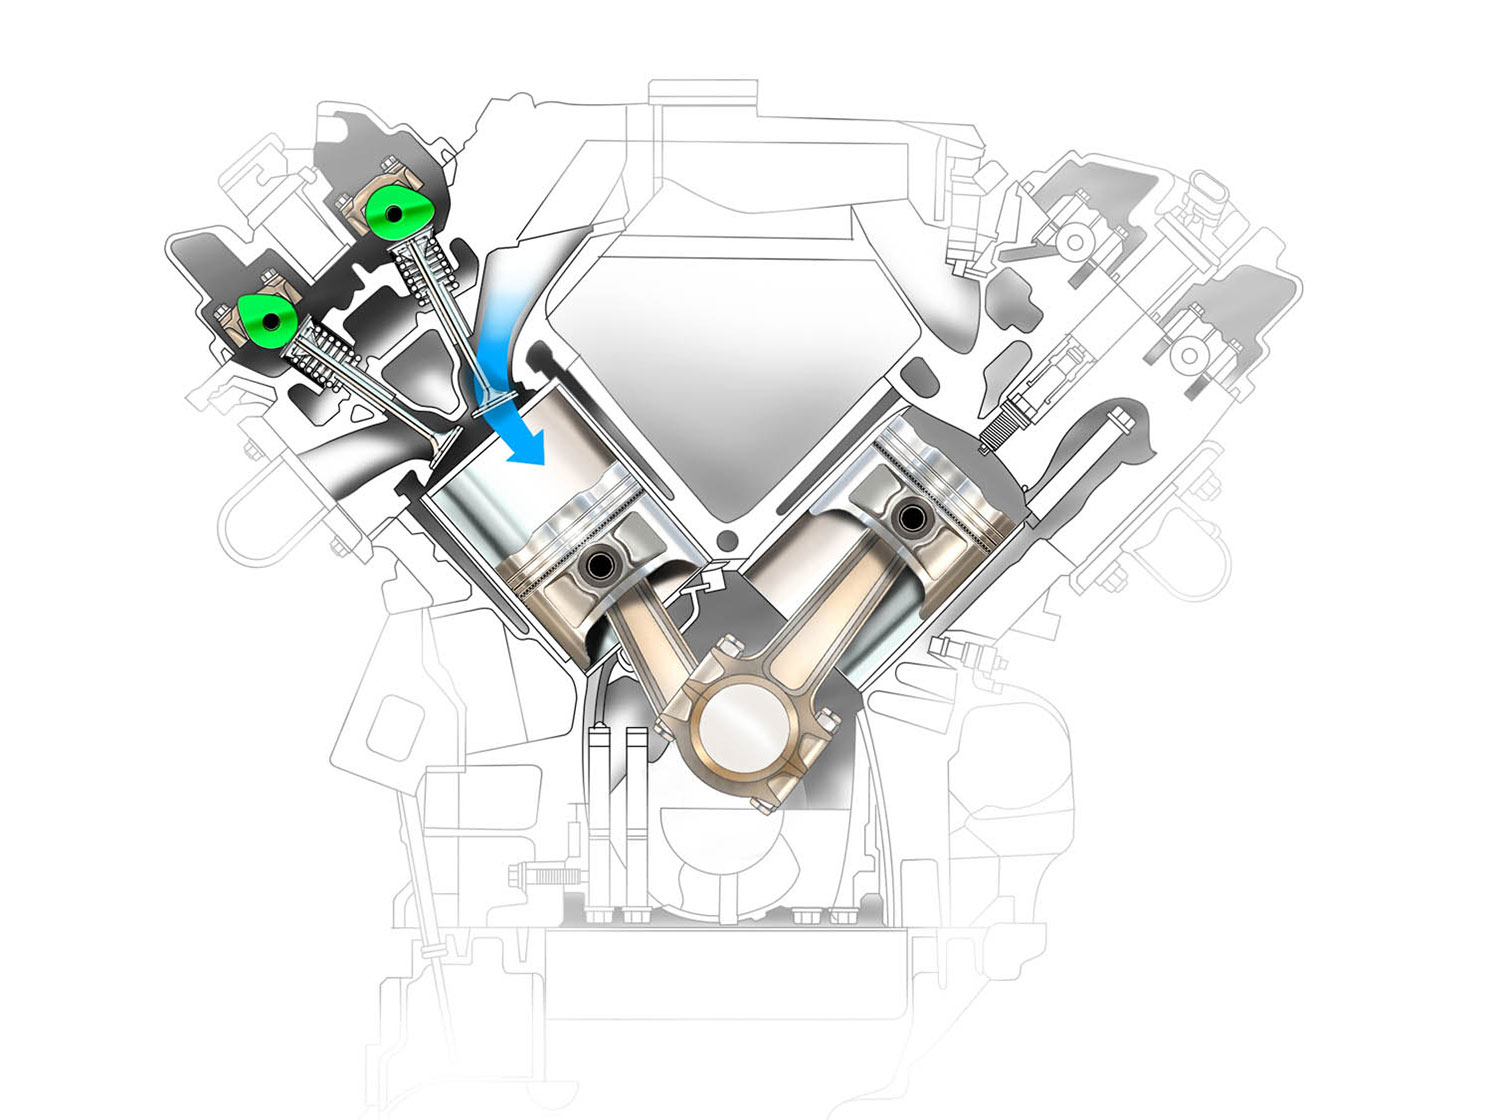 Dual-Overhead-Cam (DOHC) Engine Ultimate power potential comes with a size price